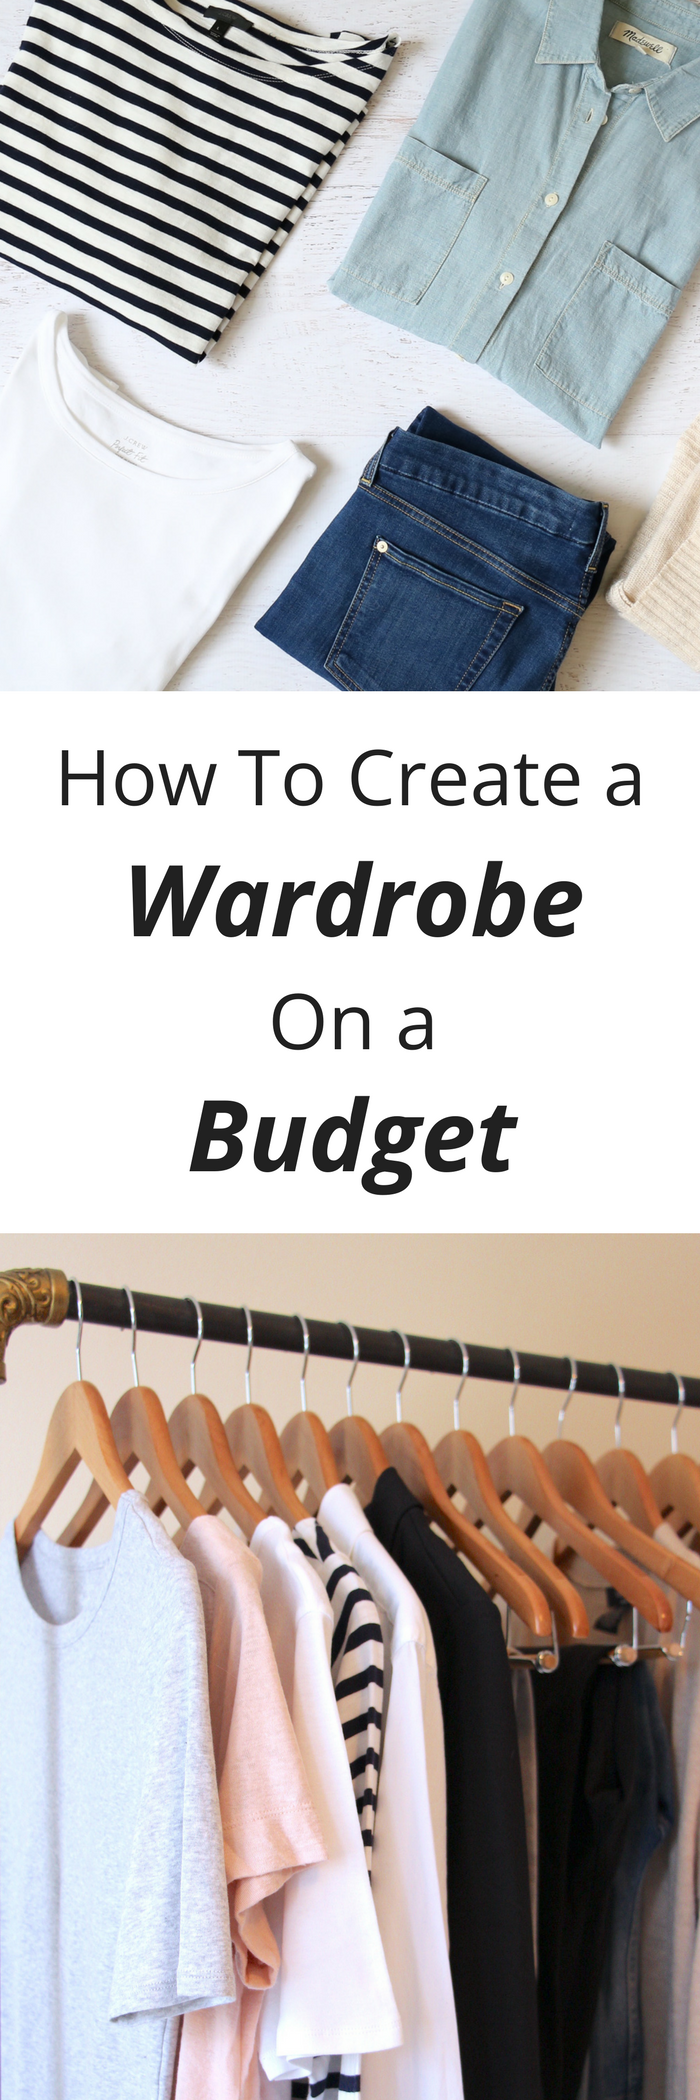 How To Create a Wardrobe On a Budget